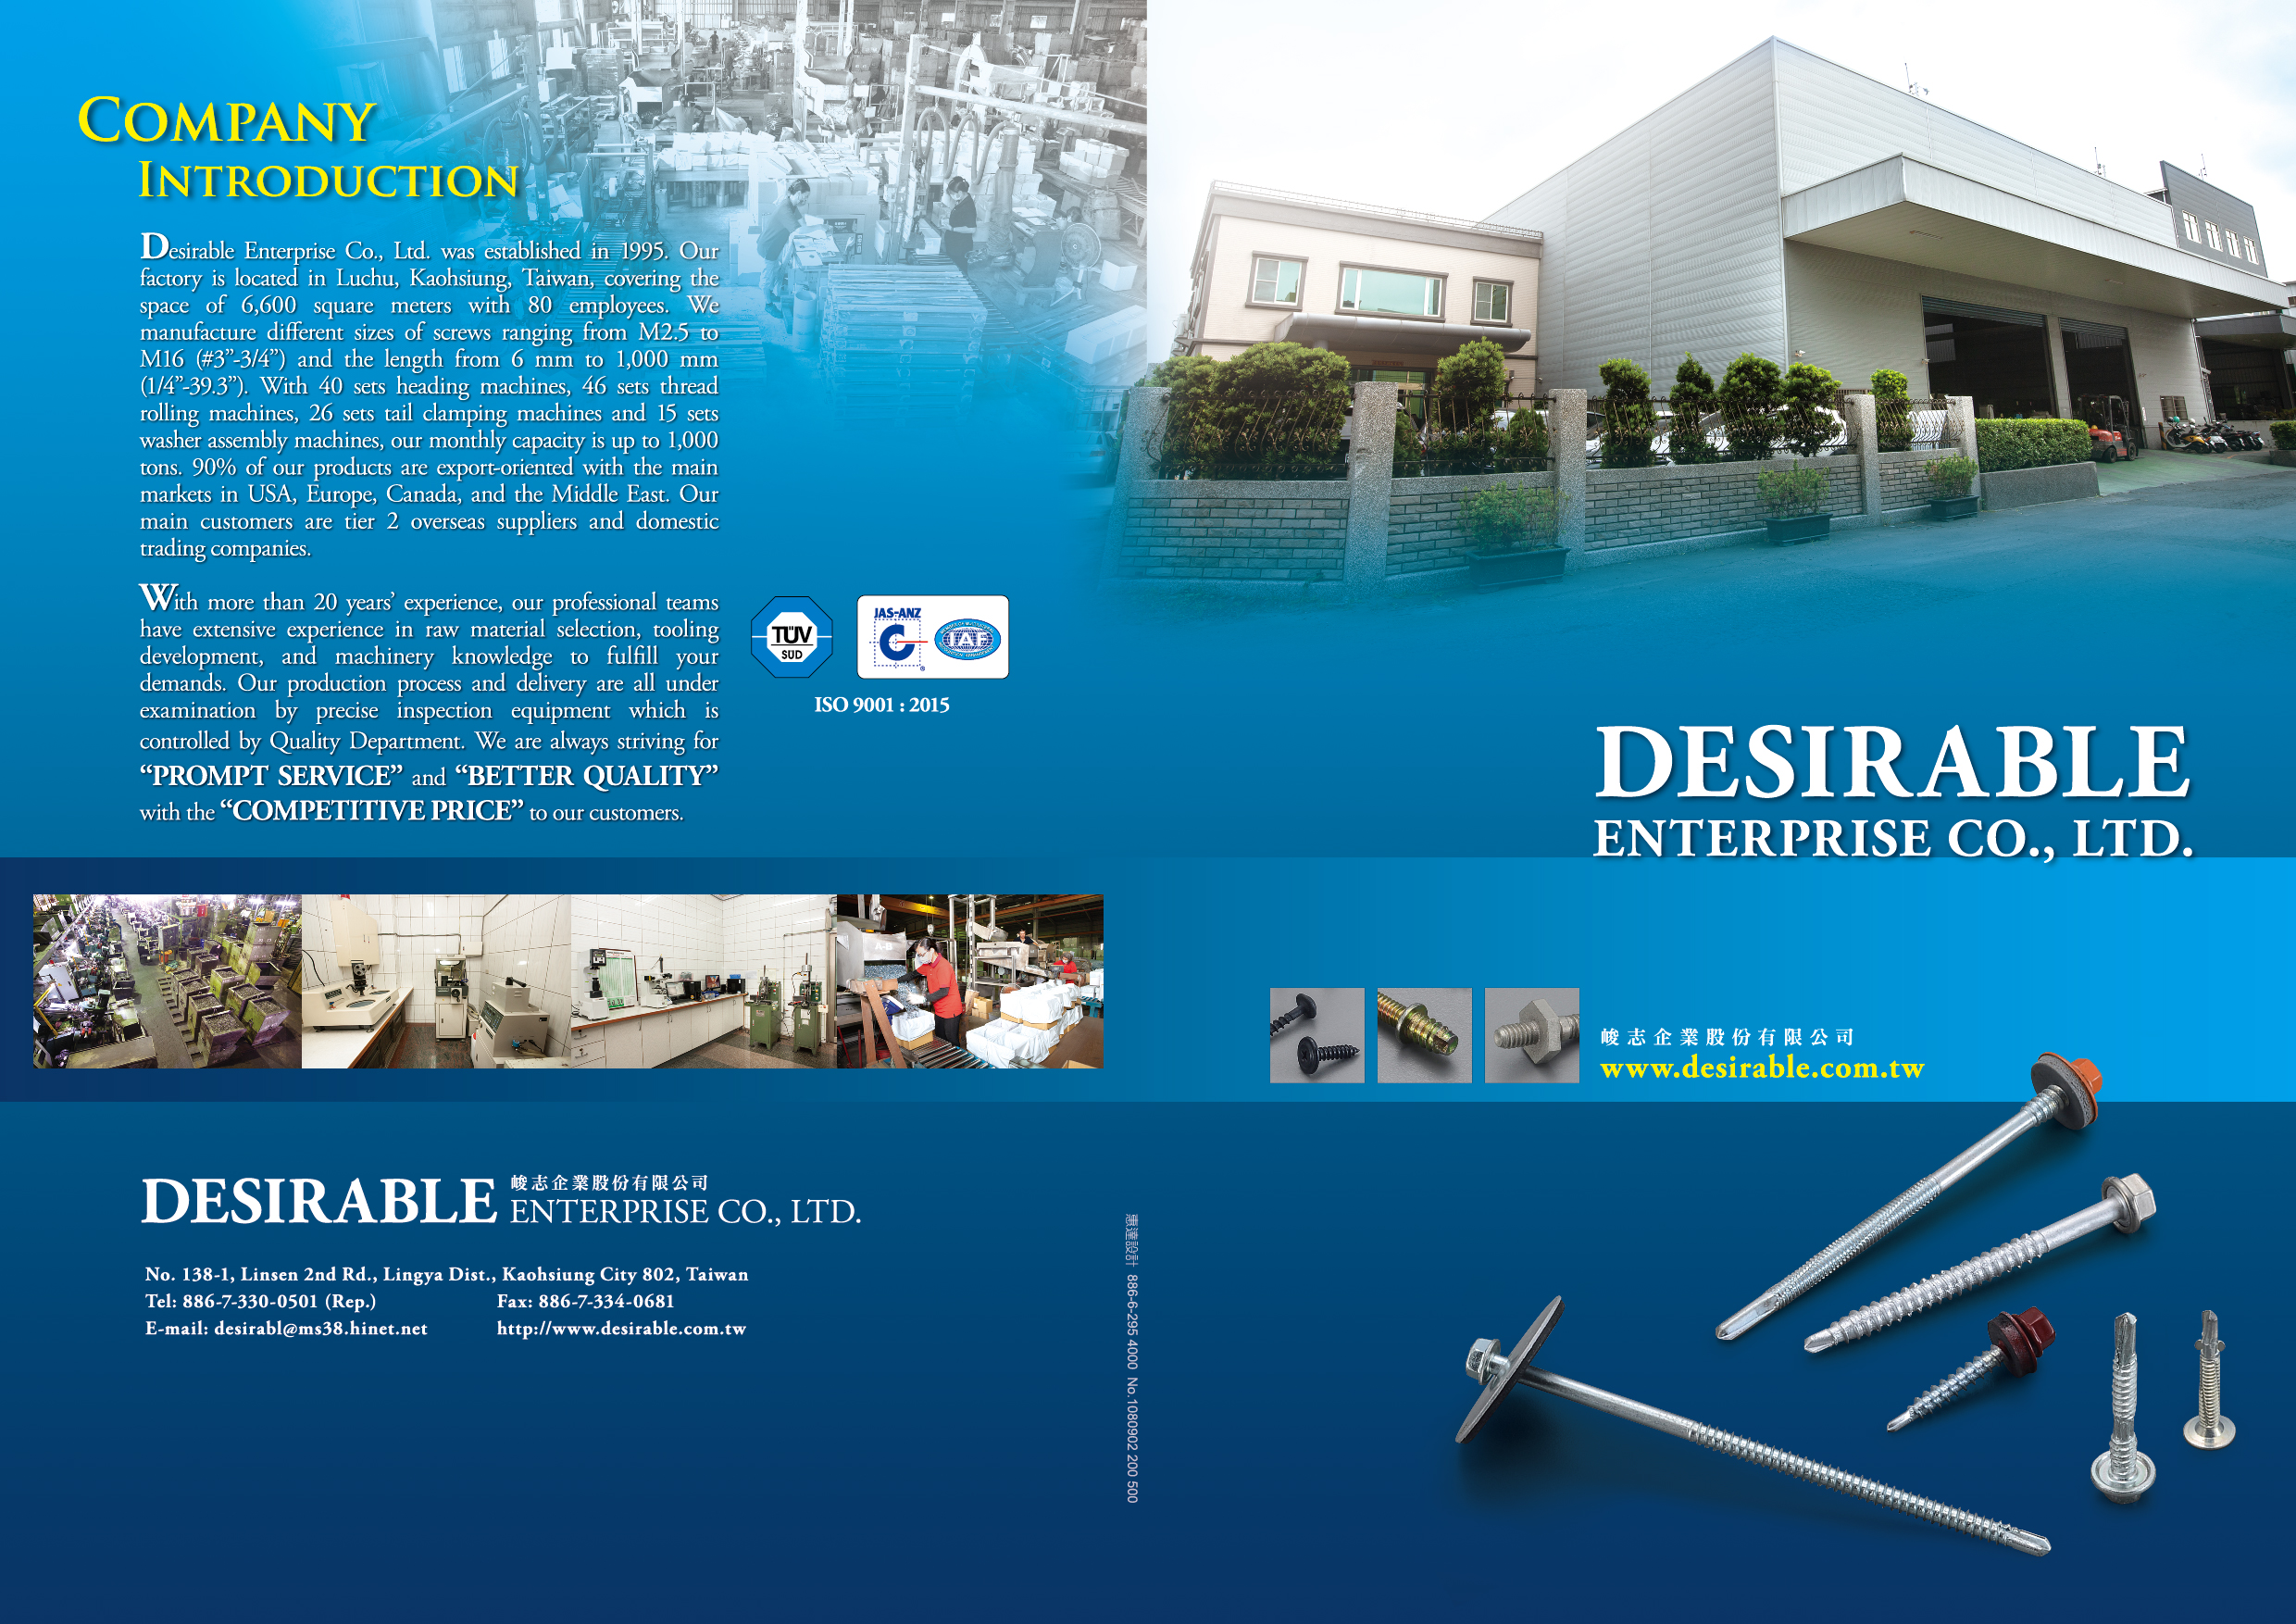 DESIRABLE ENTERPRISE CO., LTD. Online Catalogues